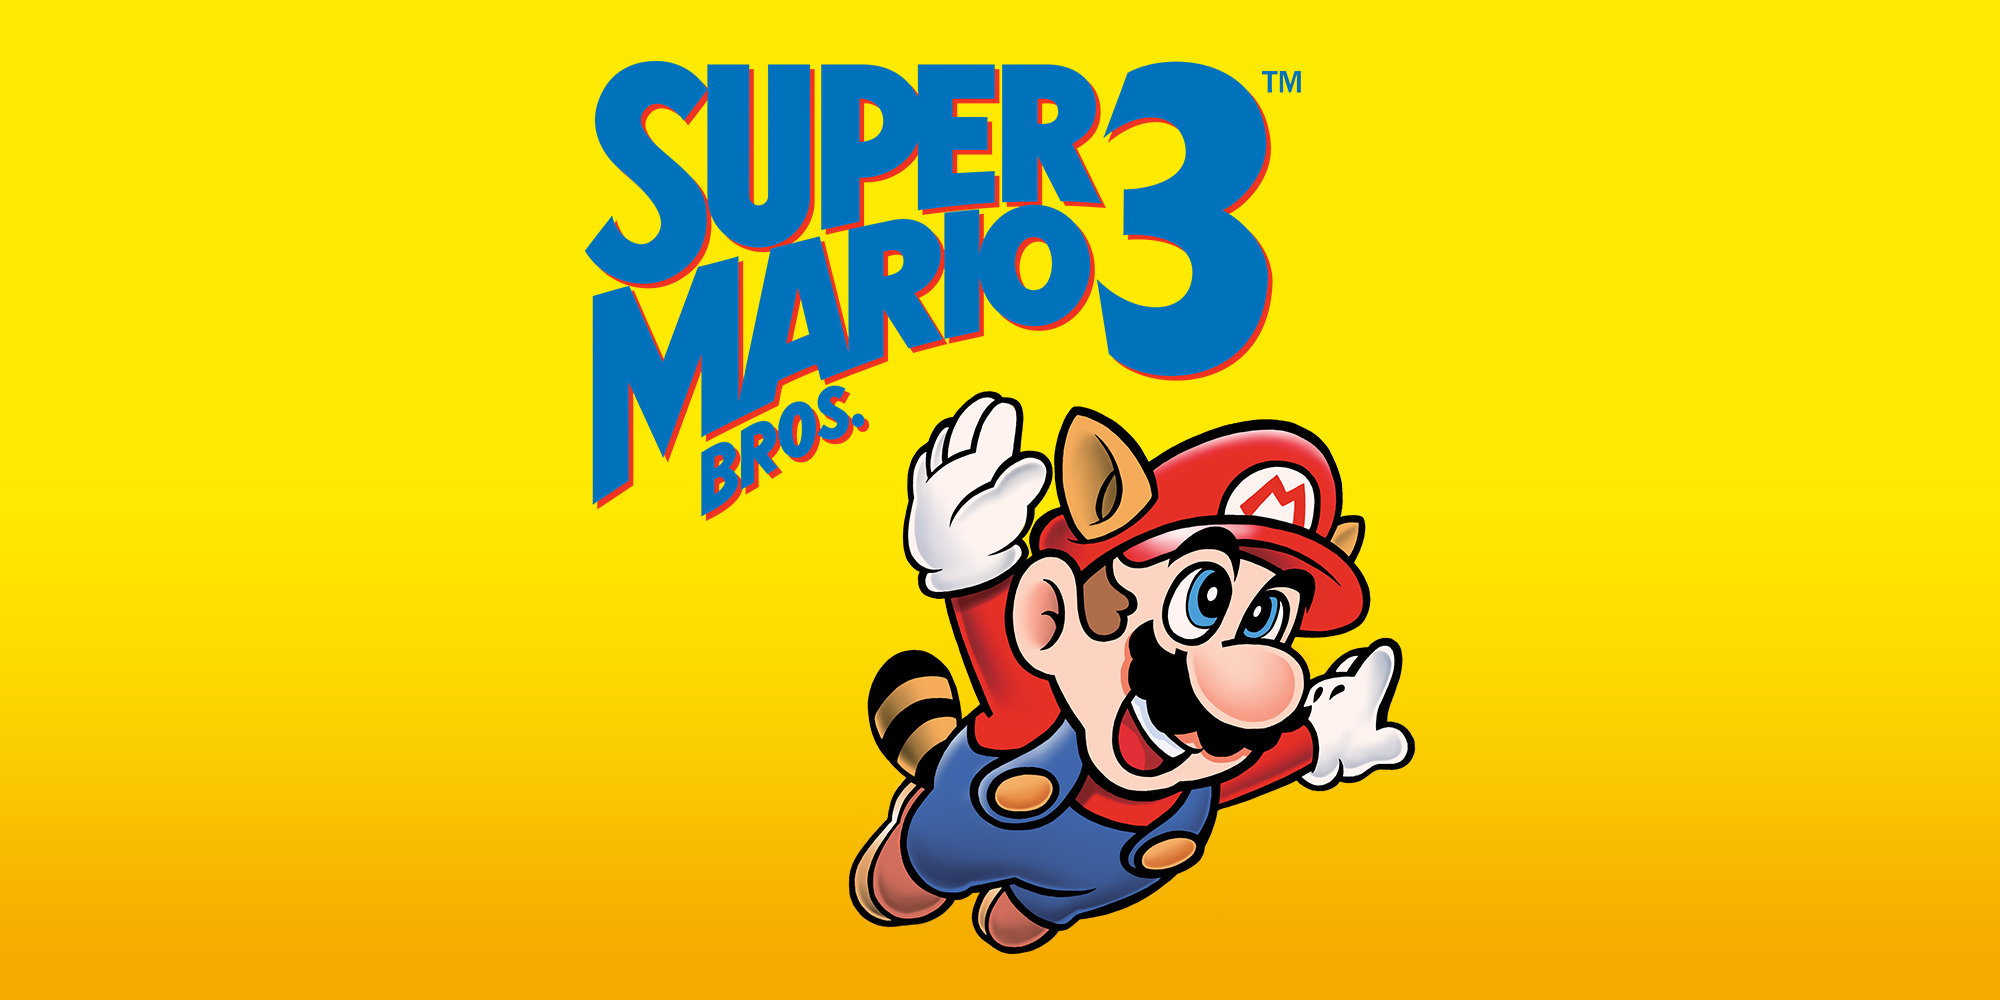 You know? The game where Mario is a flying raccoon. Of course you know. Also, raccoons can't fly with their tails. Call it a Tanooki, go right ahead. If it makes you sleep better at night, call it a Whirlydoodle, I don't care. Raccoons can't fly and those aren't what tails are for, fight me. You too, Sonic fans. I saw you perk up.